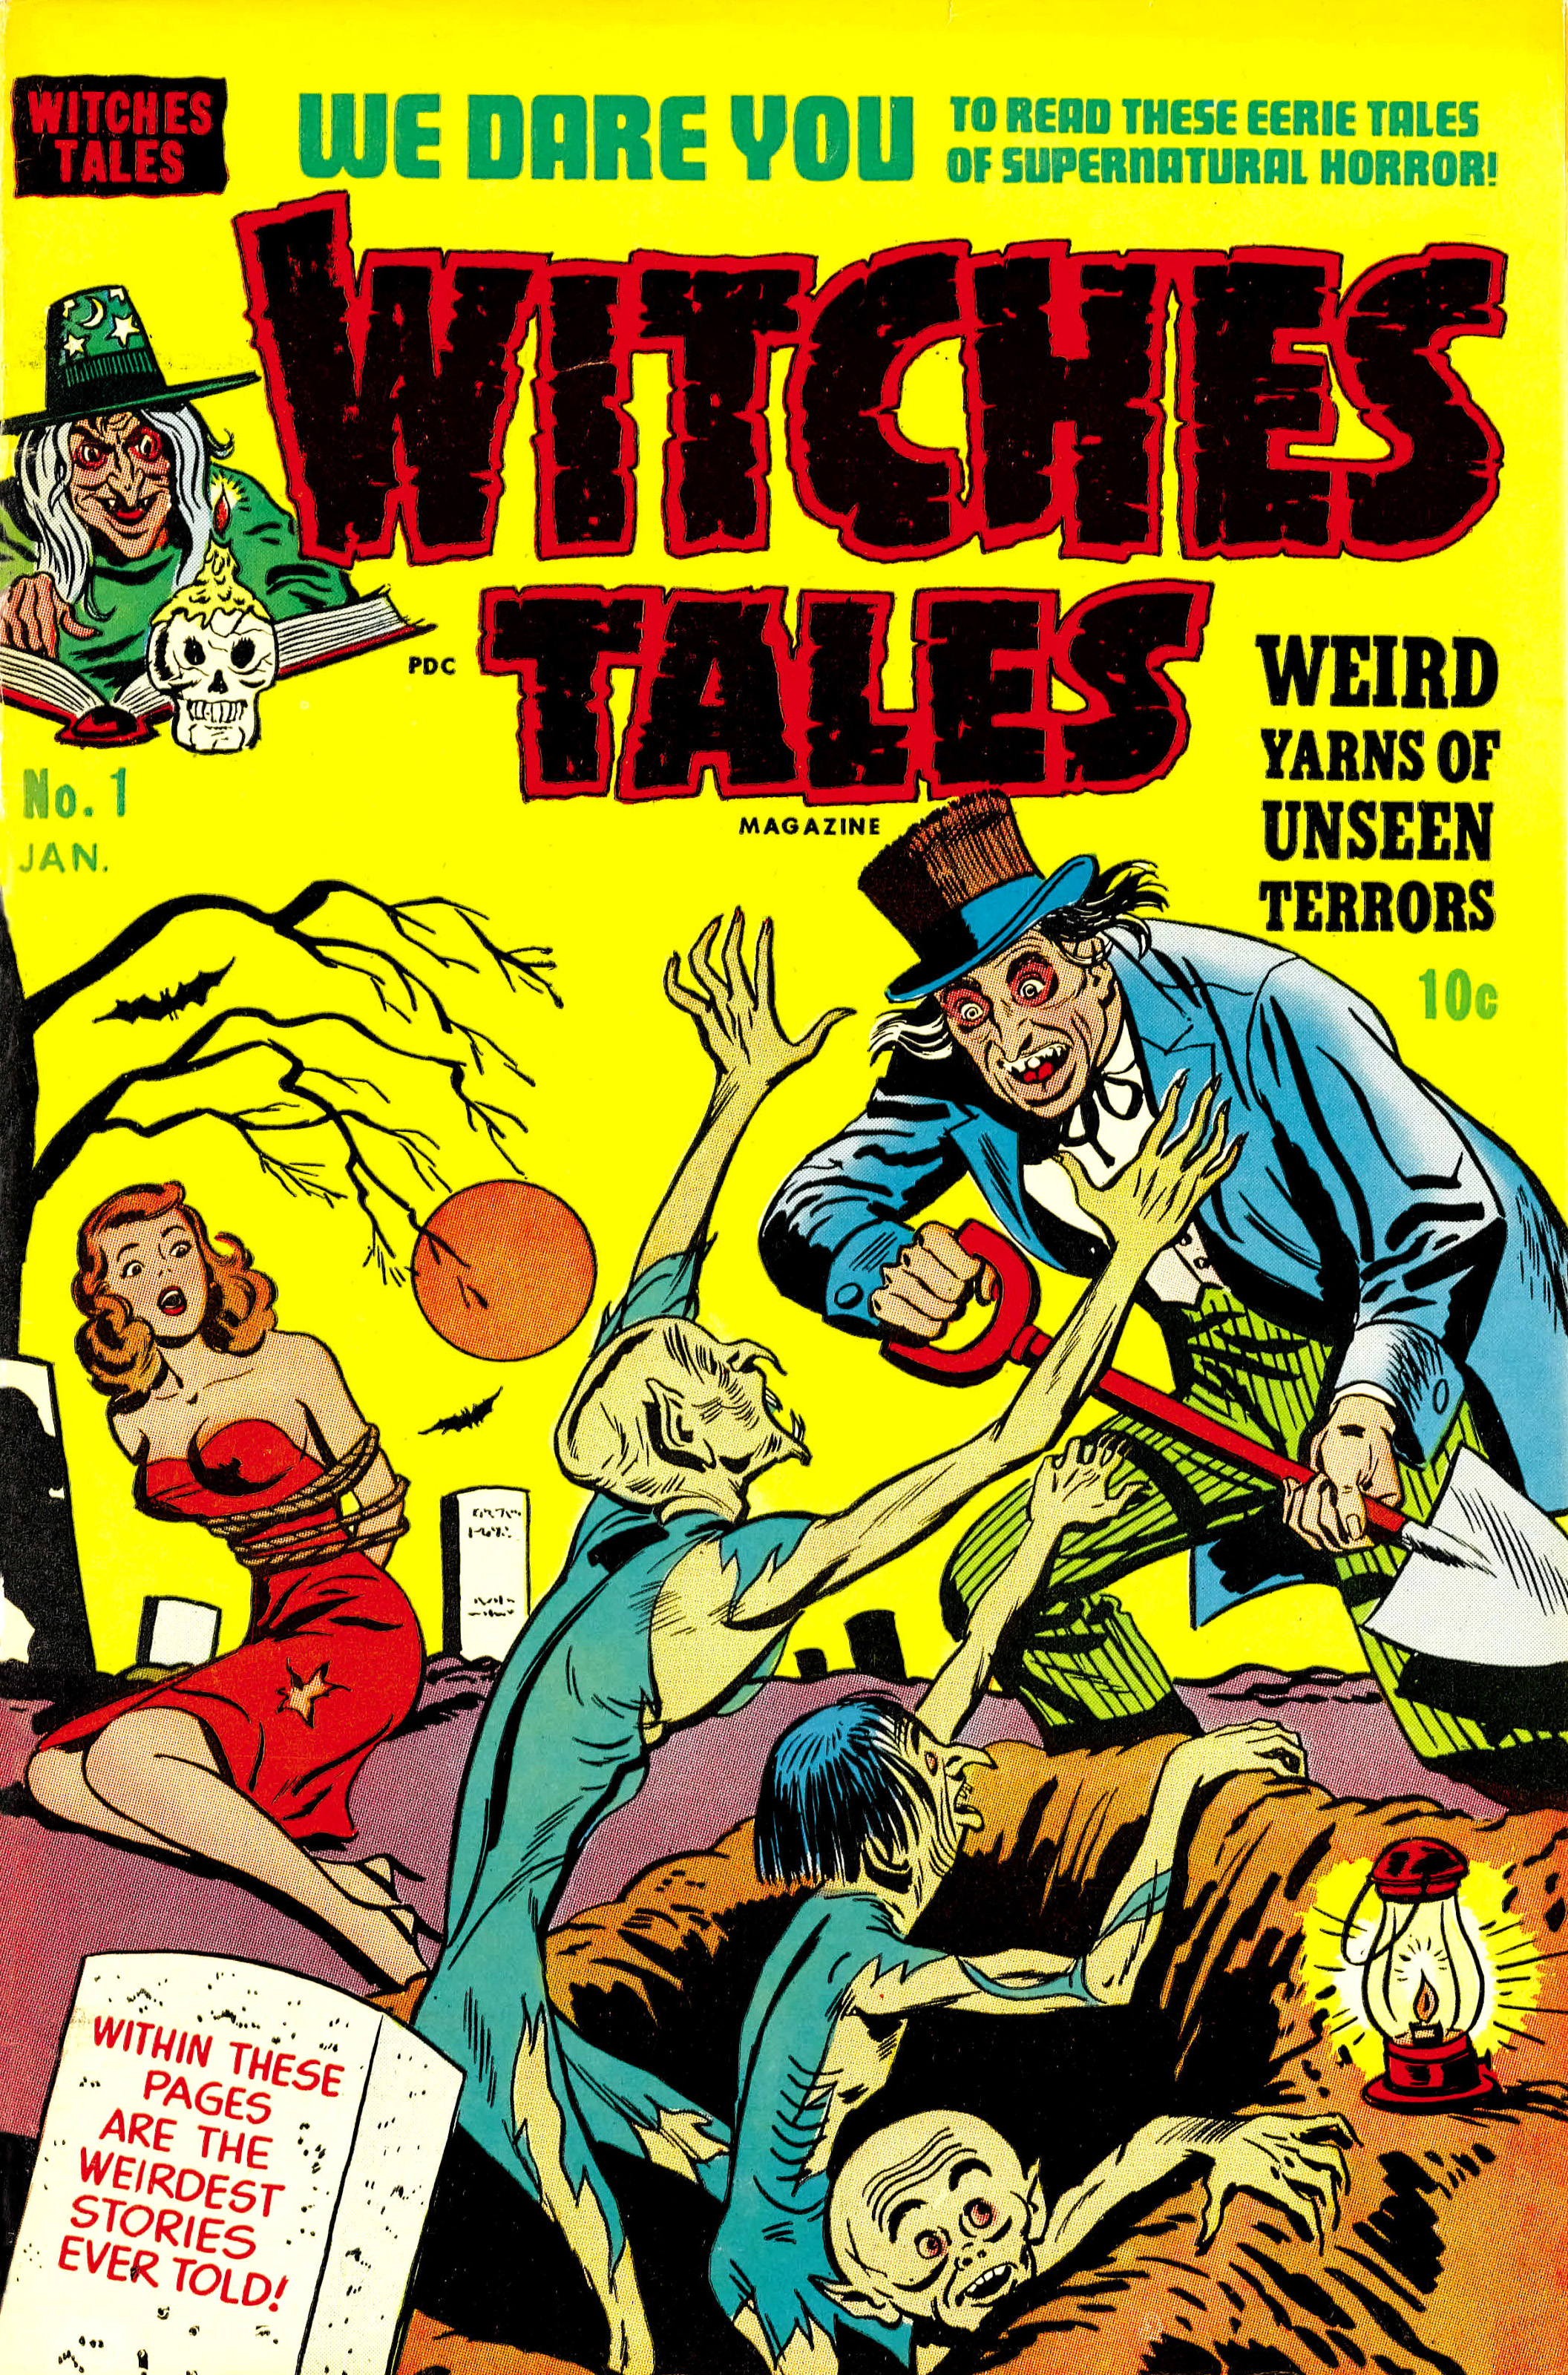 Witches Tales #1, Bob Powell Cover